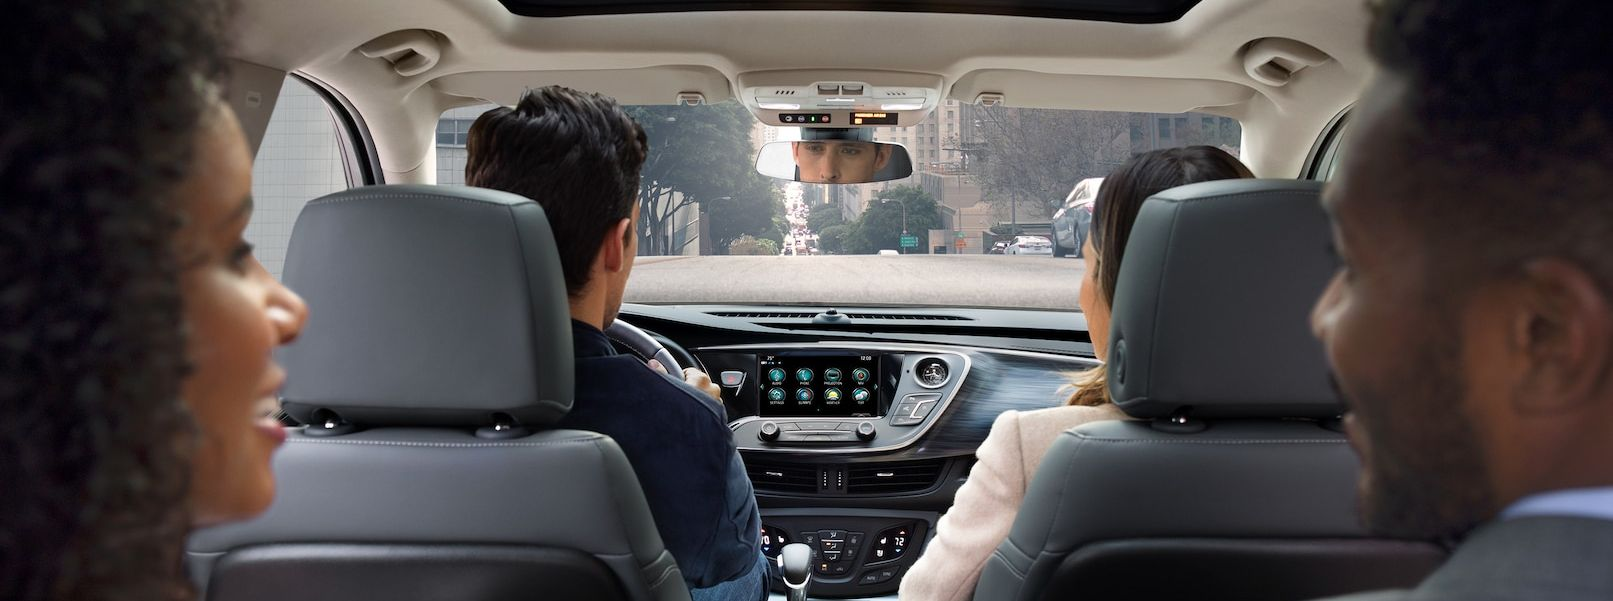 Comfort For All in the Buick Envision!